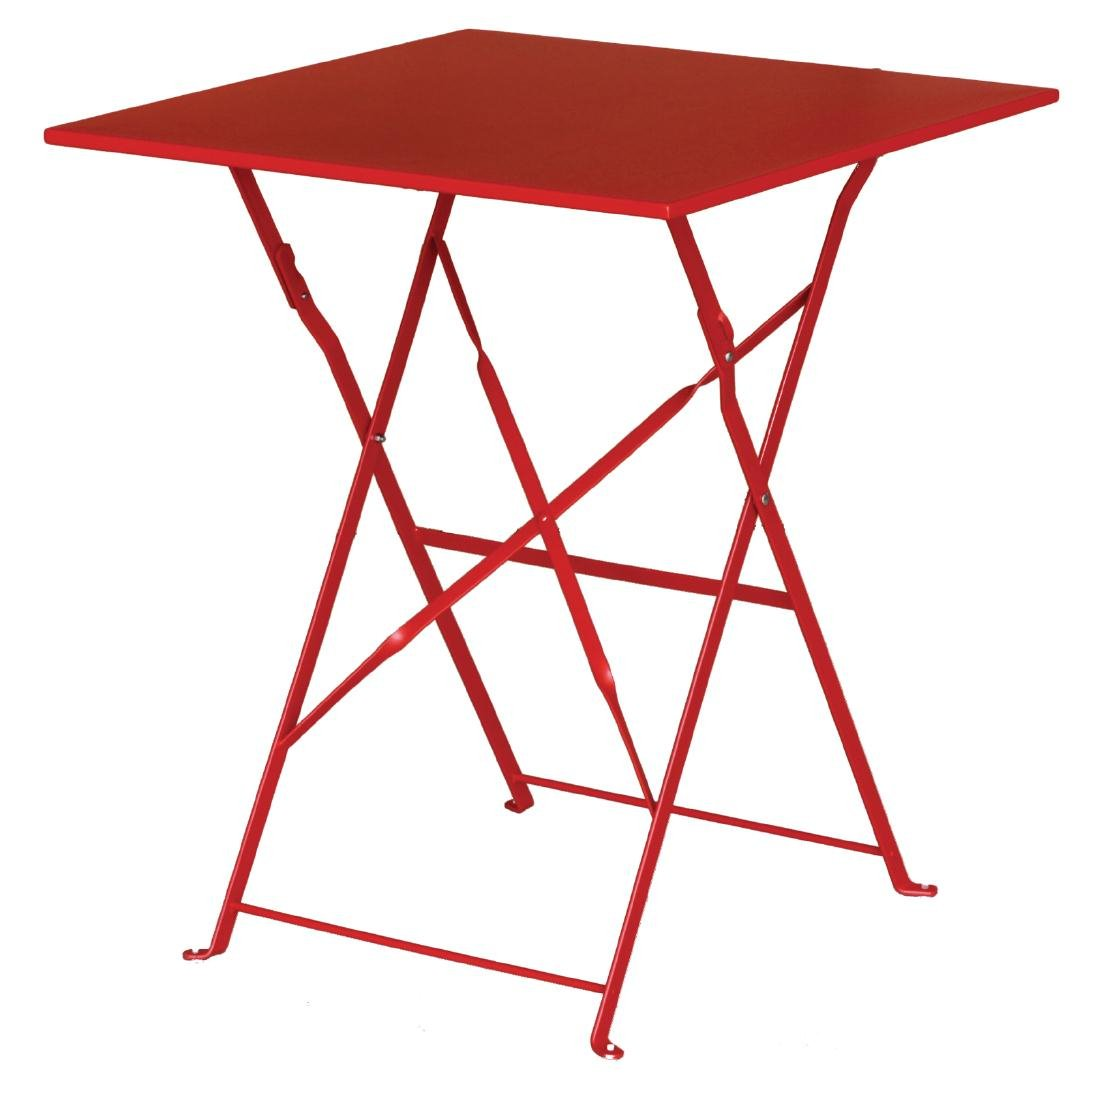 Pavement Table – The Parisian – Red